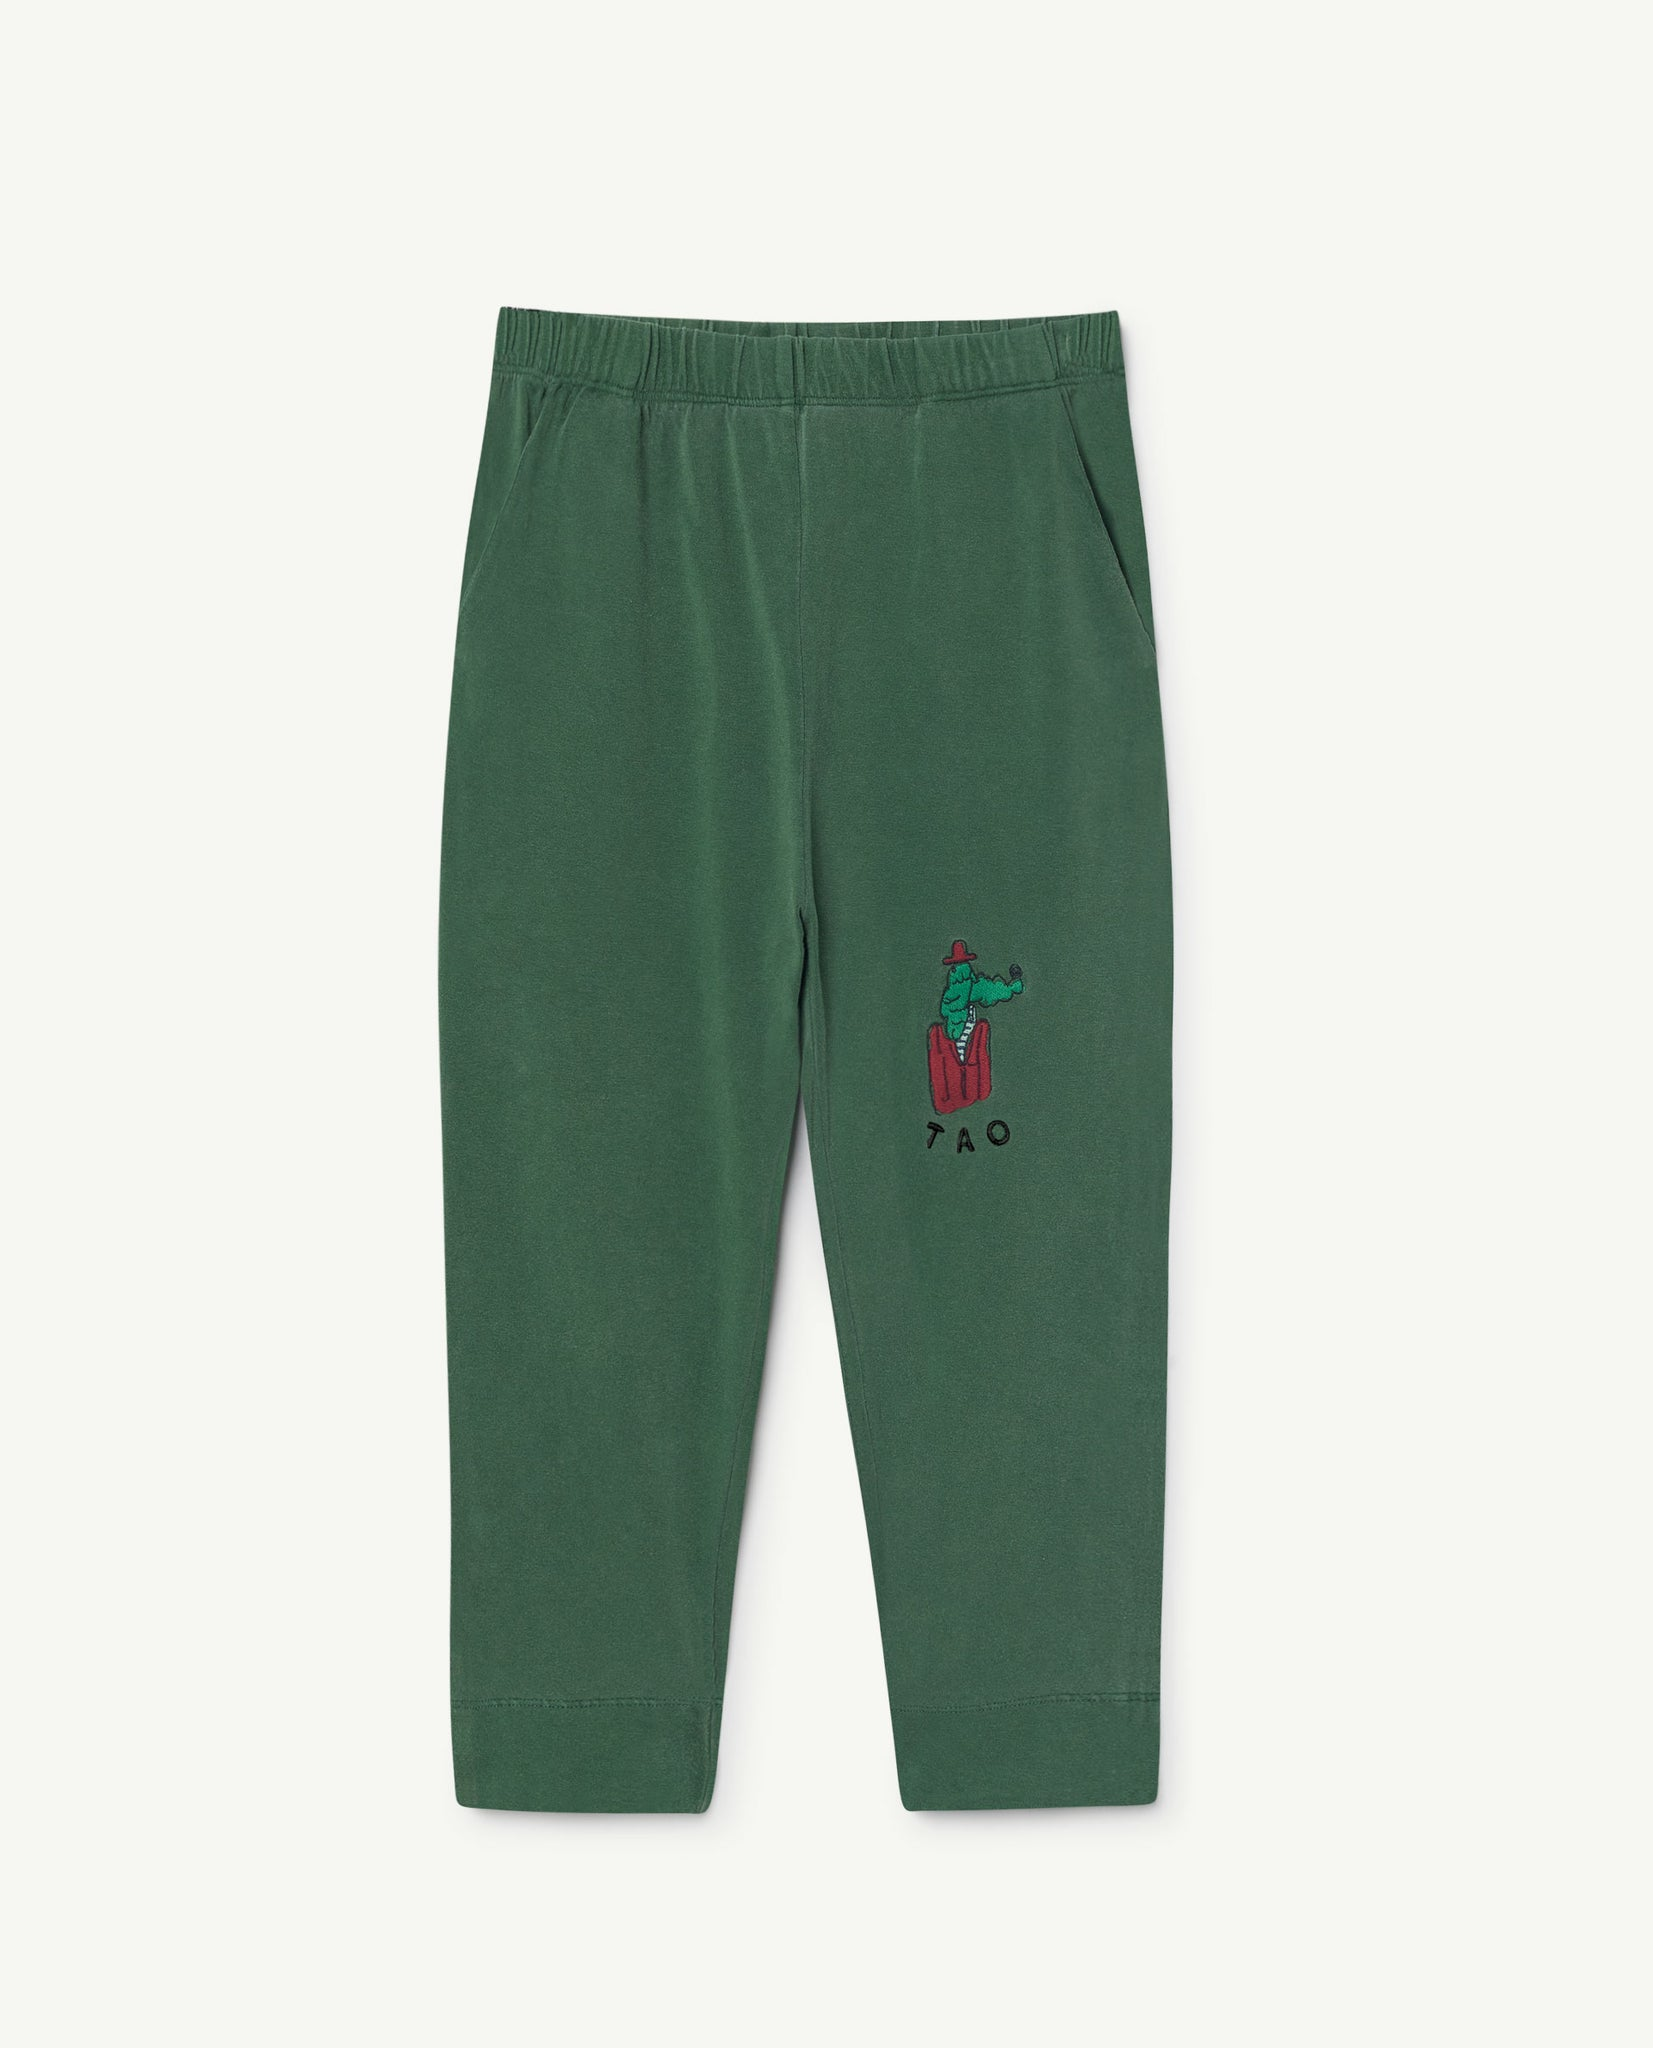 Rhino kids pants - green white bomar